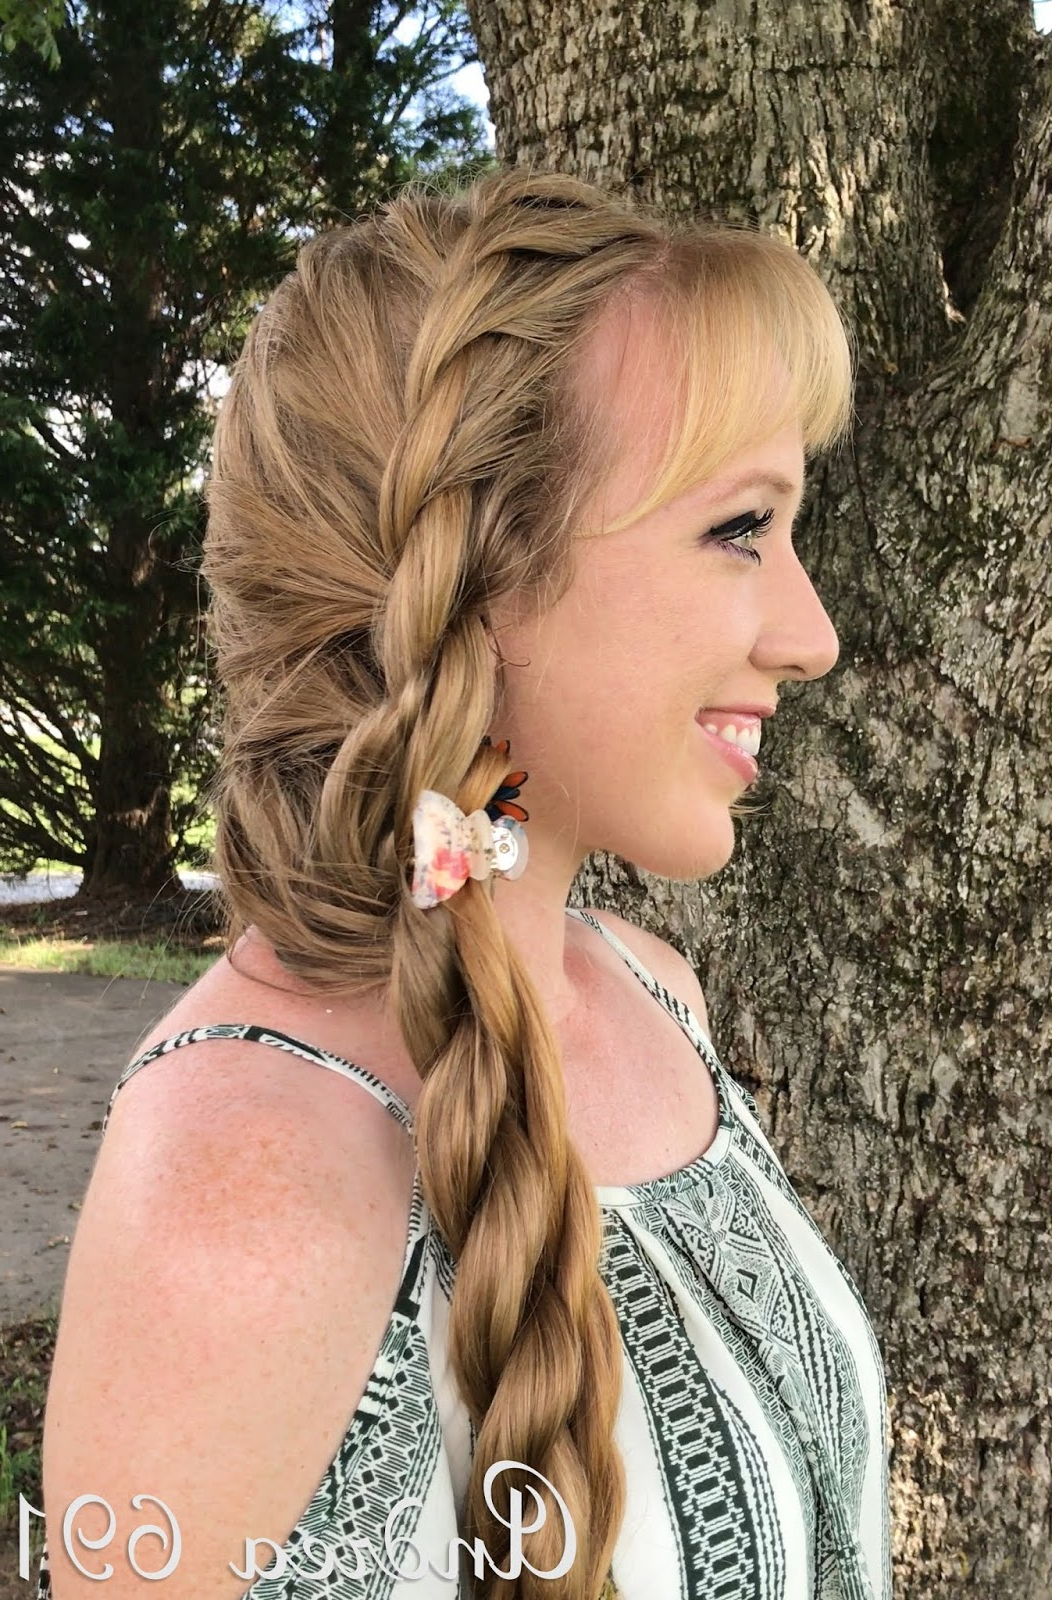 Latest Double Rapunzel Side Rope Braid Hairstyles Throughout Braids & Hairstyles For Super Long Hair: Side Rope Braid (Gallery 15 of 20)